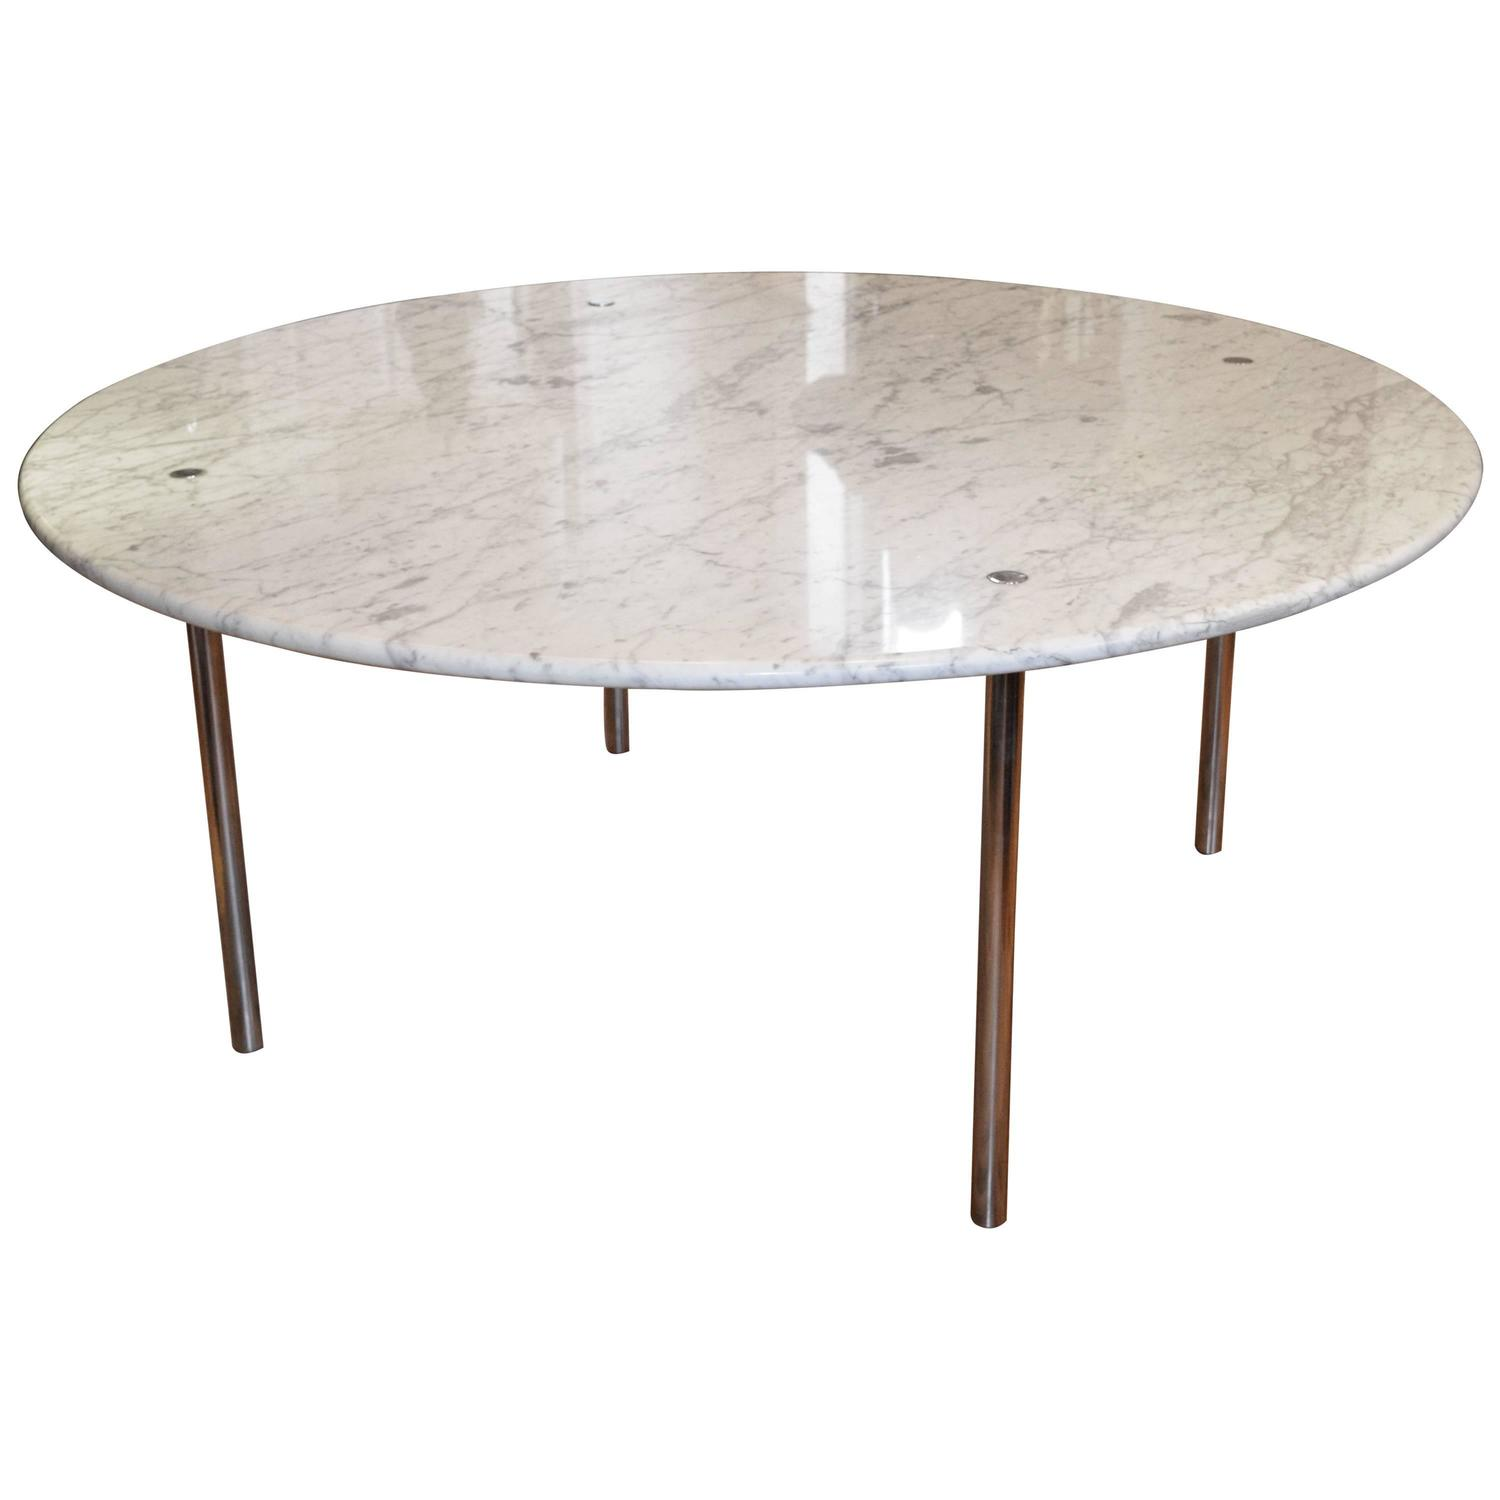 Monumental round marble dining table by katavolos littell for Round stone top dining table